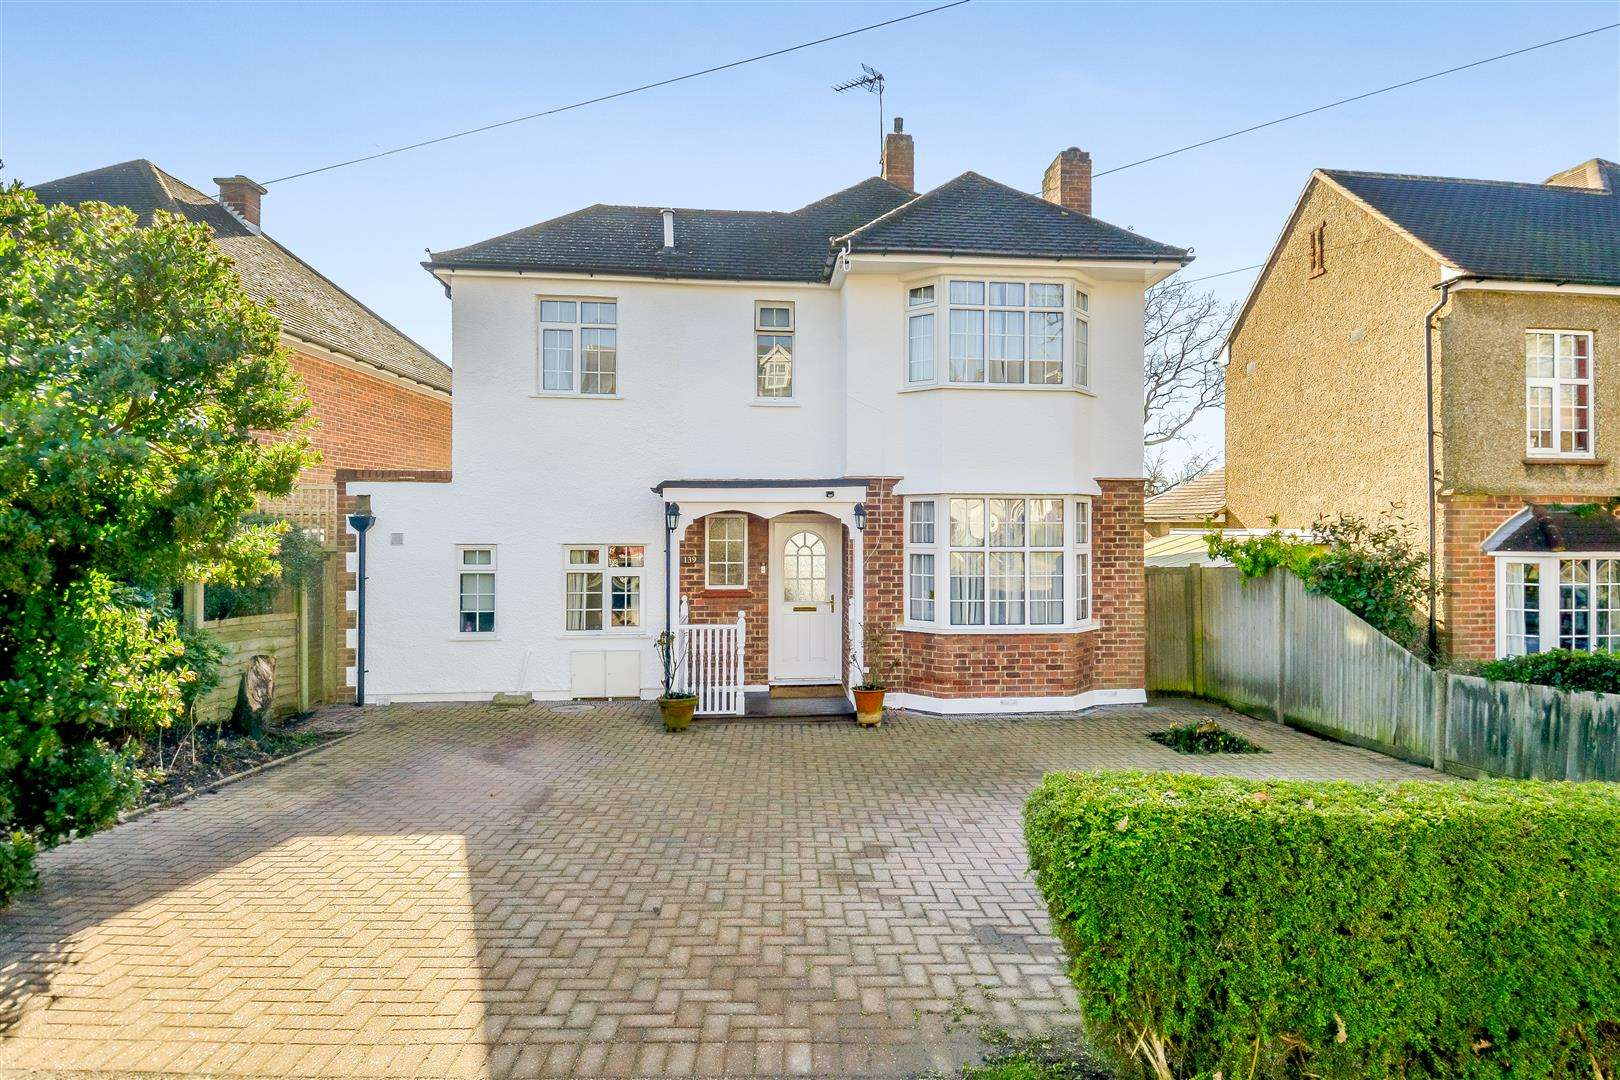 4 bed for sale in Merry Hill Road, Bushey - Property Image 1